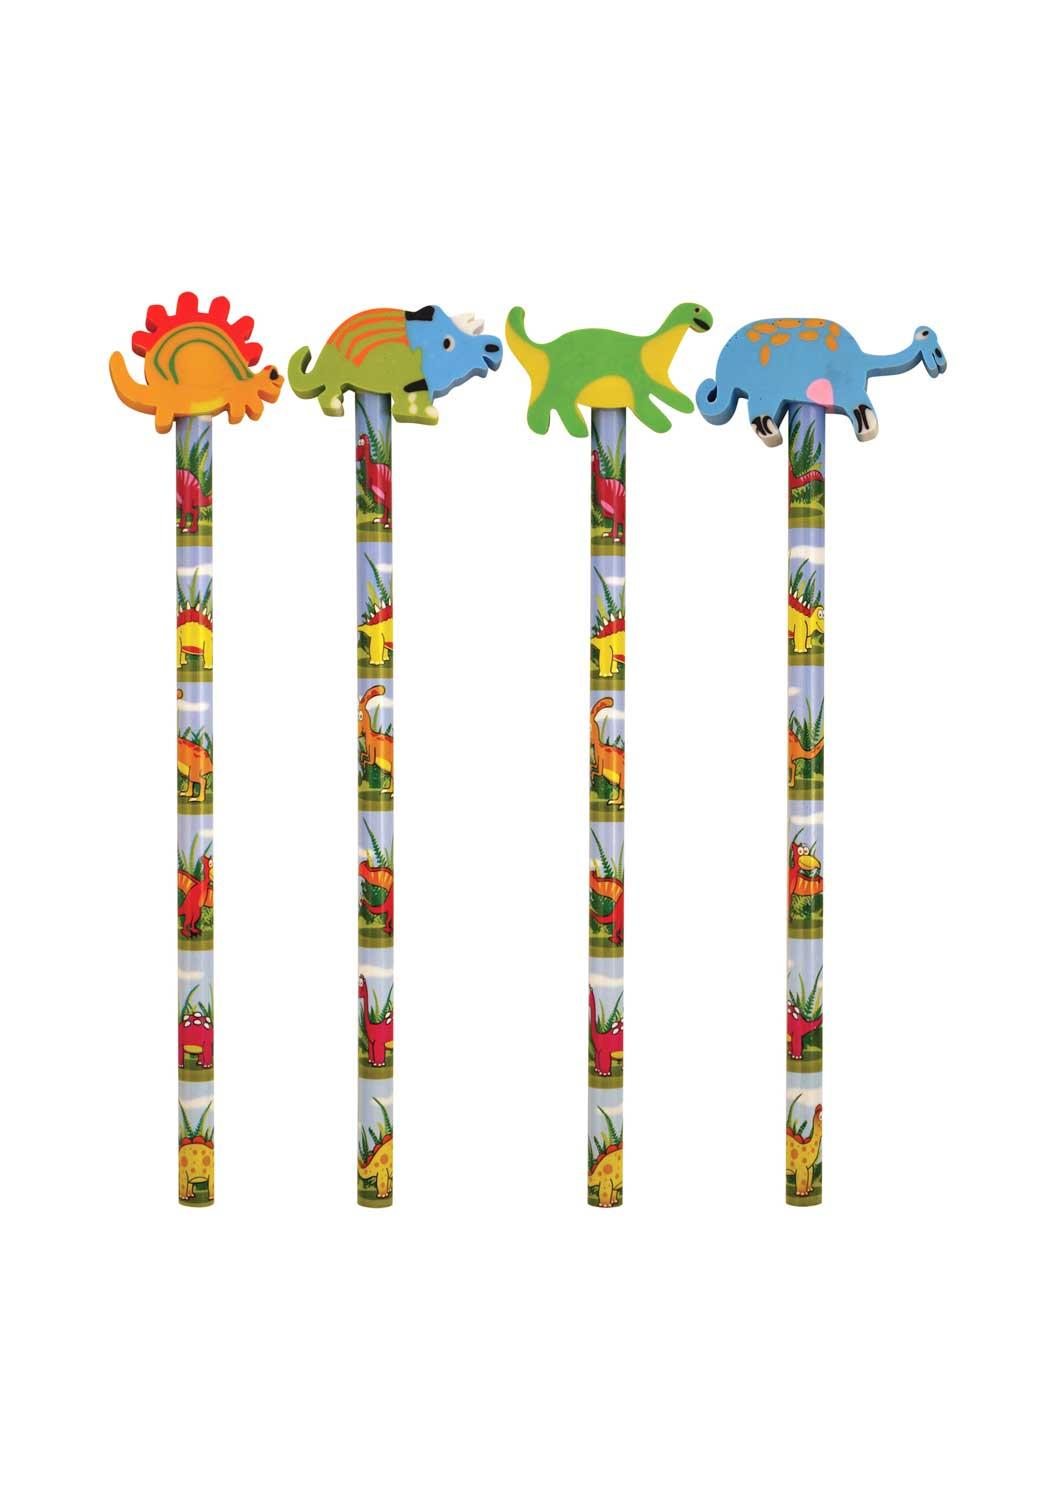 12 Dinosaur Pencils With Eraser Tops